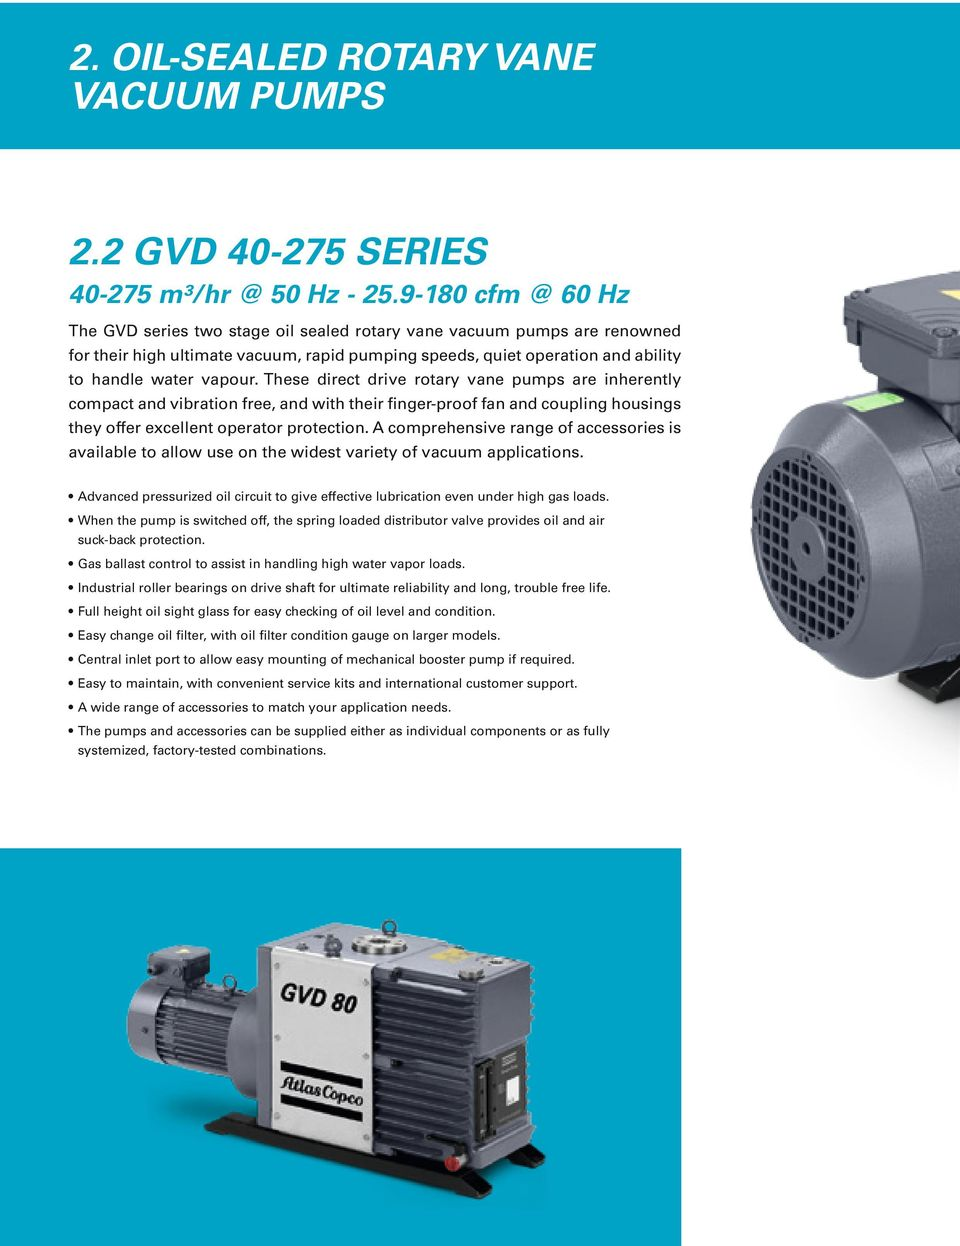 These direct drive rotary vane pumps are inherently compact and vibration  free, and with their